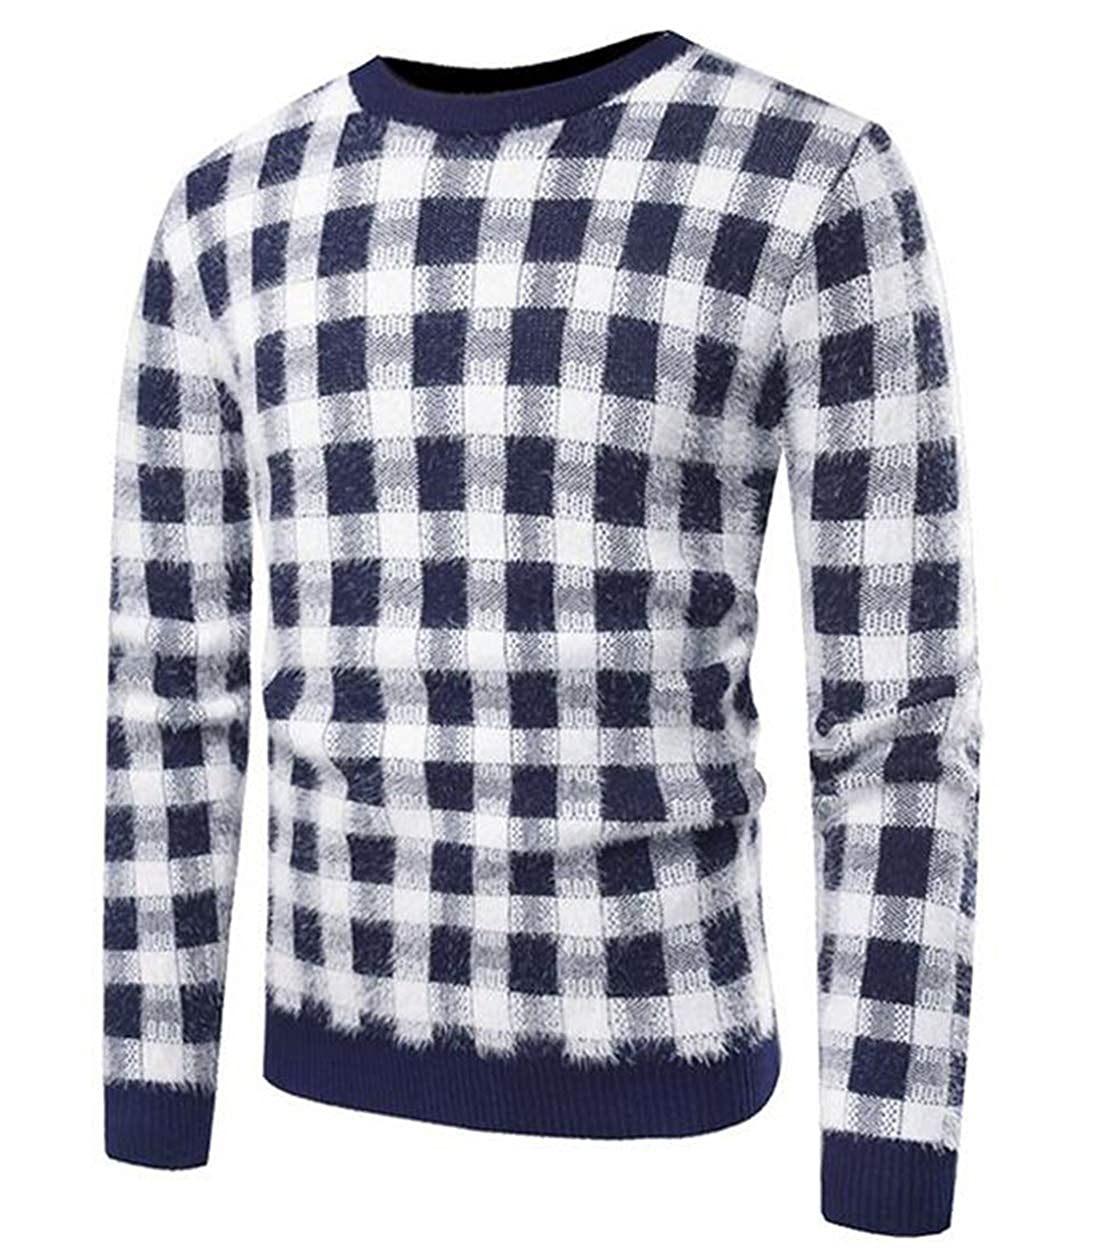 X-Future Mens Long Sleeve Slim Casual Crew Neck Plaid Check Knitted Pullover Sweater